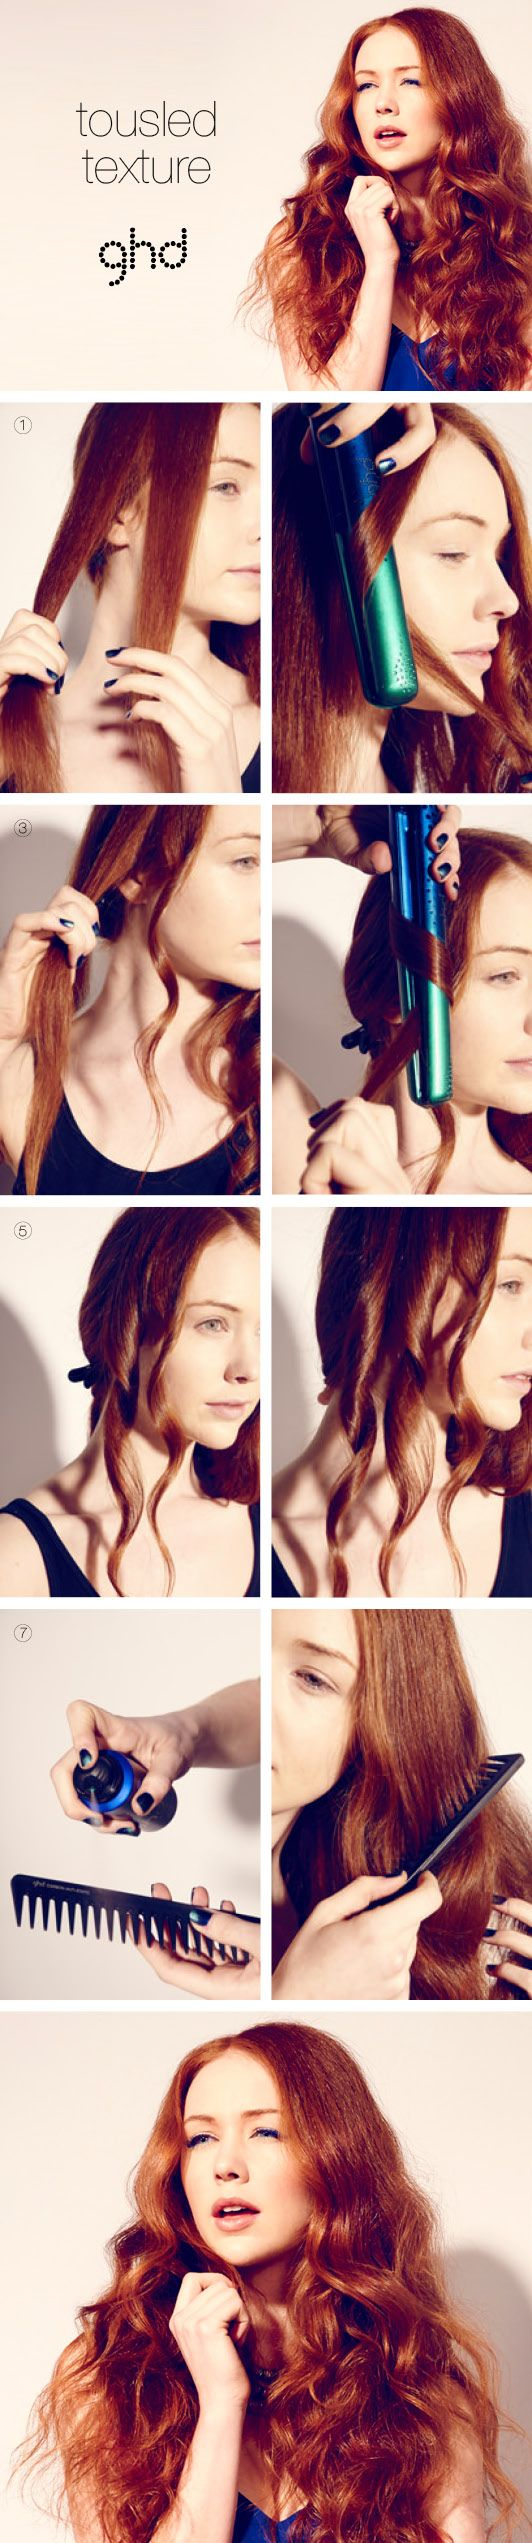 How-to hair: Tousled Texture   #hair #howto #waves #ghd #hairstyles #summerhair #softwaves